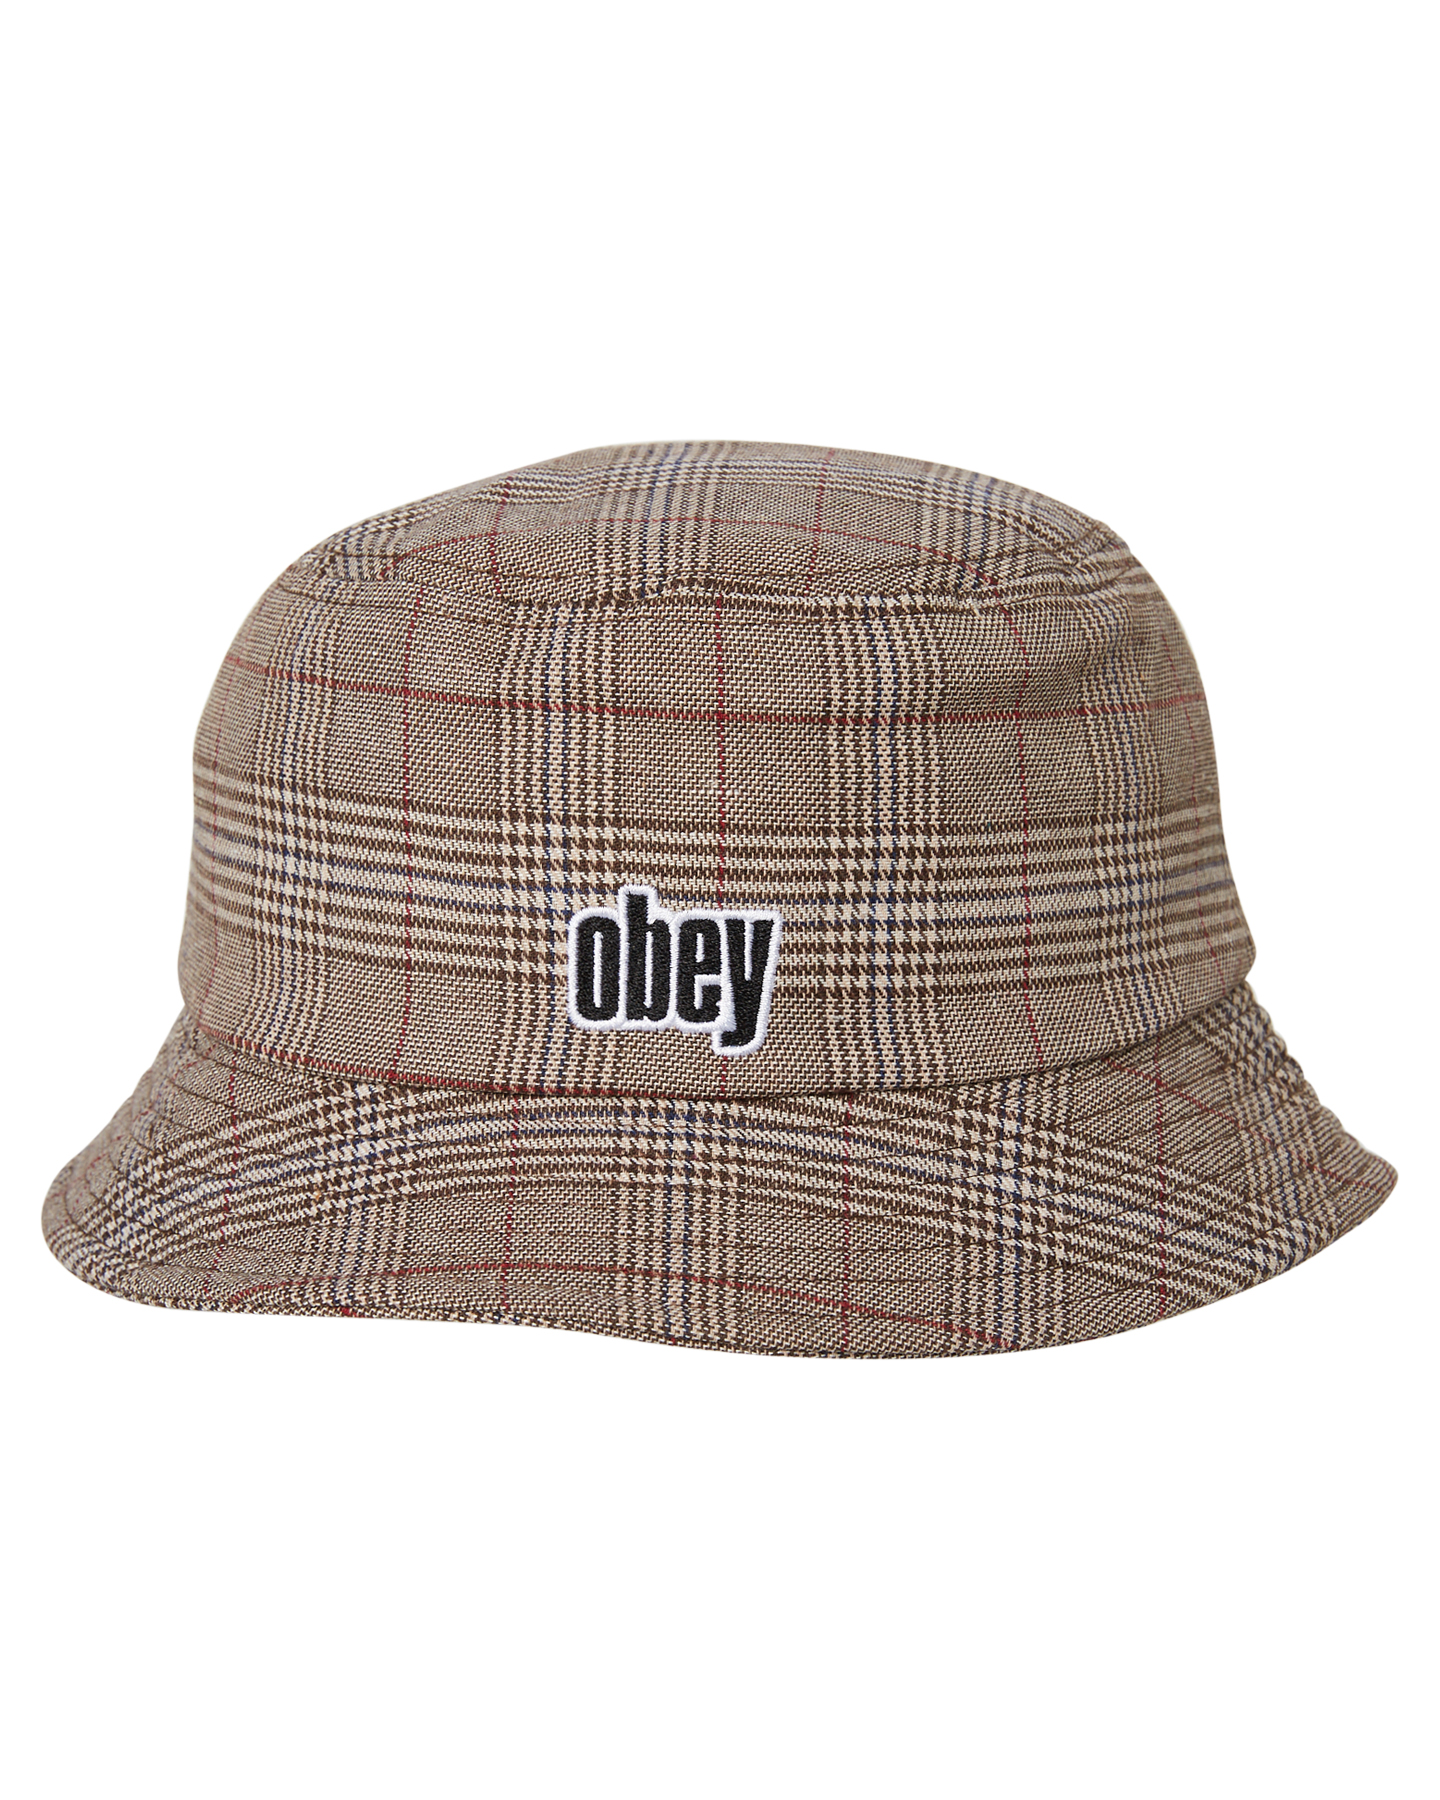 273c488e8c7 Obey Men s Dayton Bucket Hat Cotton 889582788069